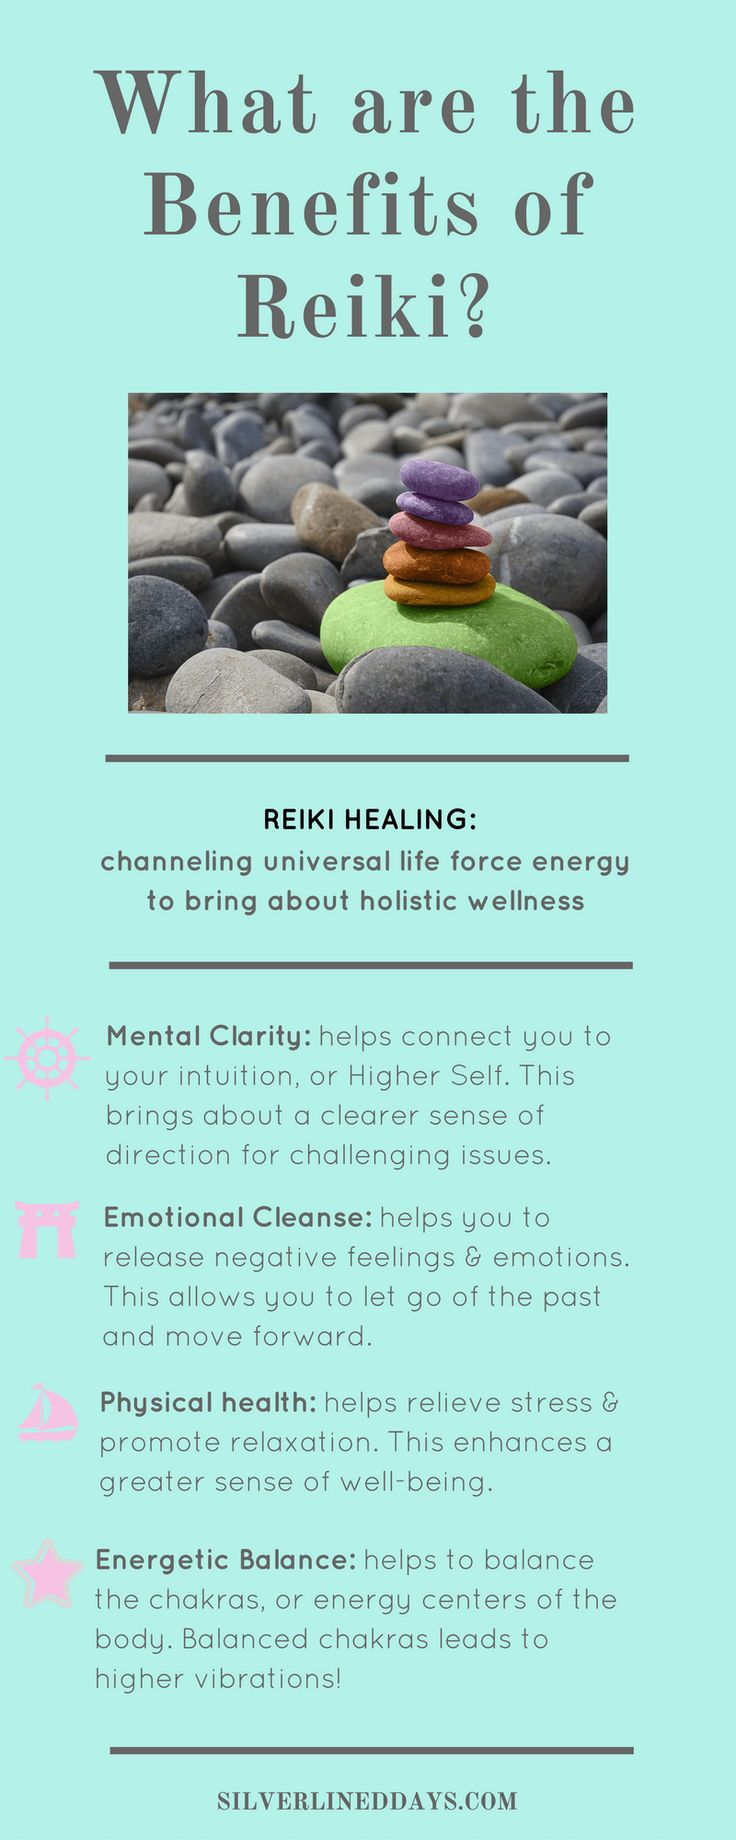 reiki tips, reiki energy, reiki benefits, reiki healing, energy healing, holistic healing, alternative medicine, metaphysical